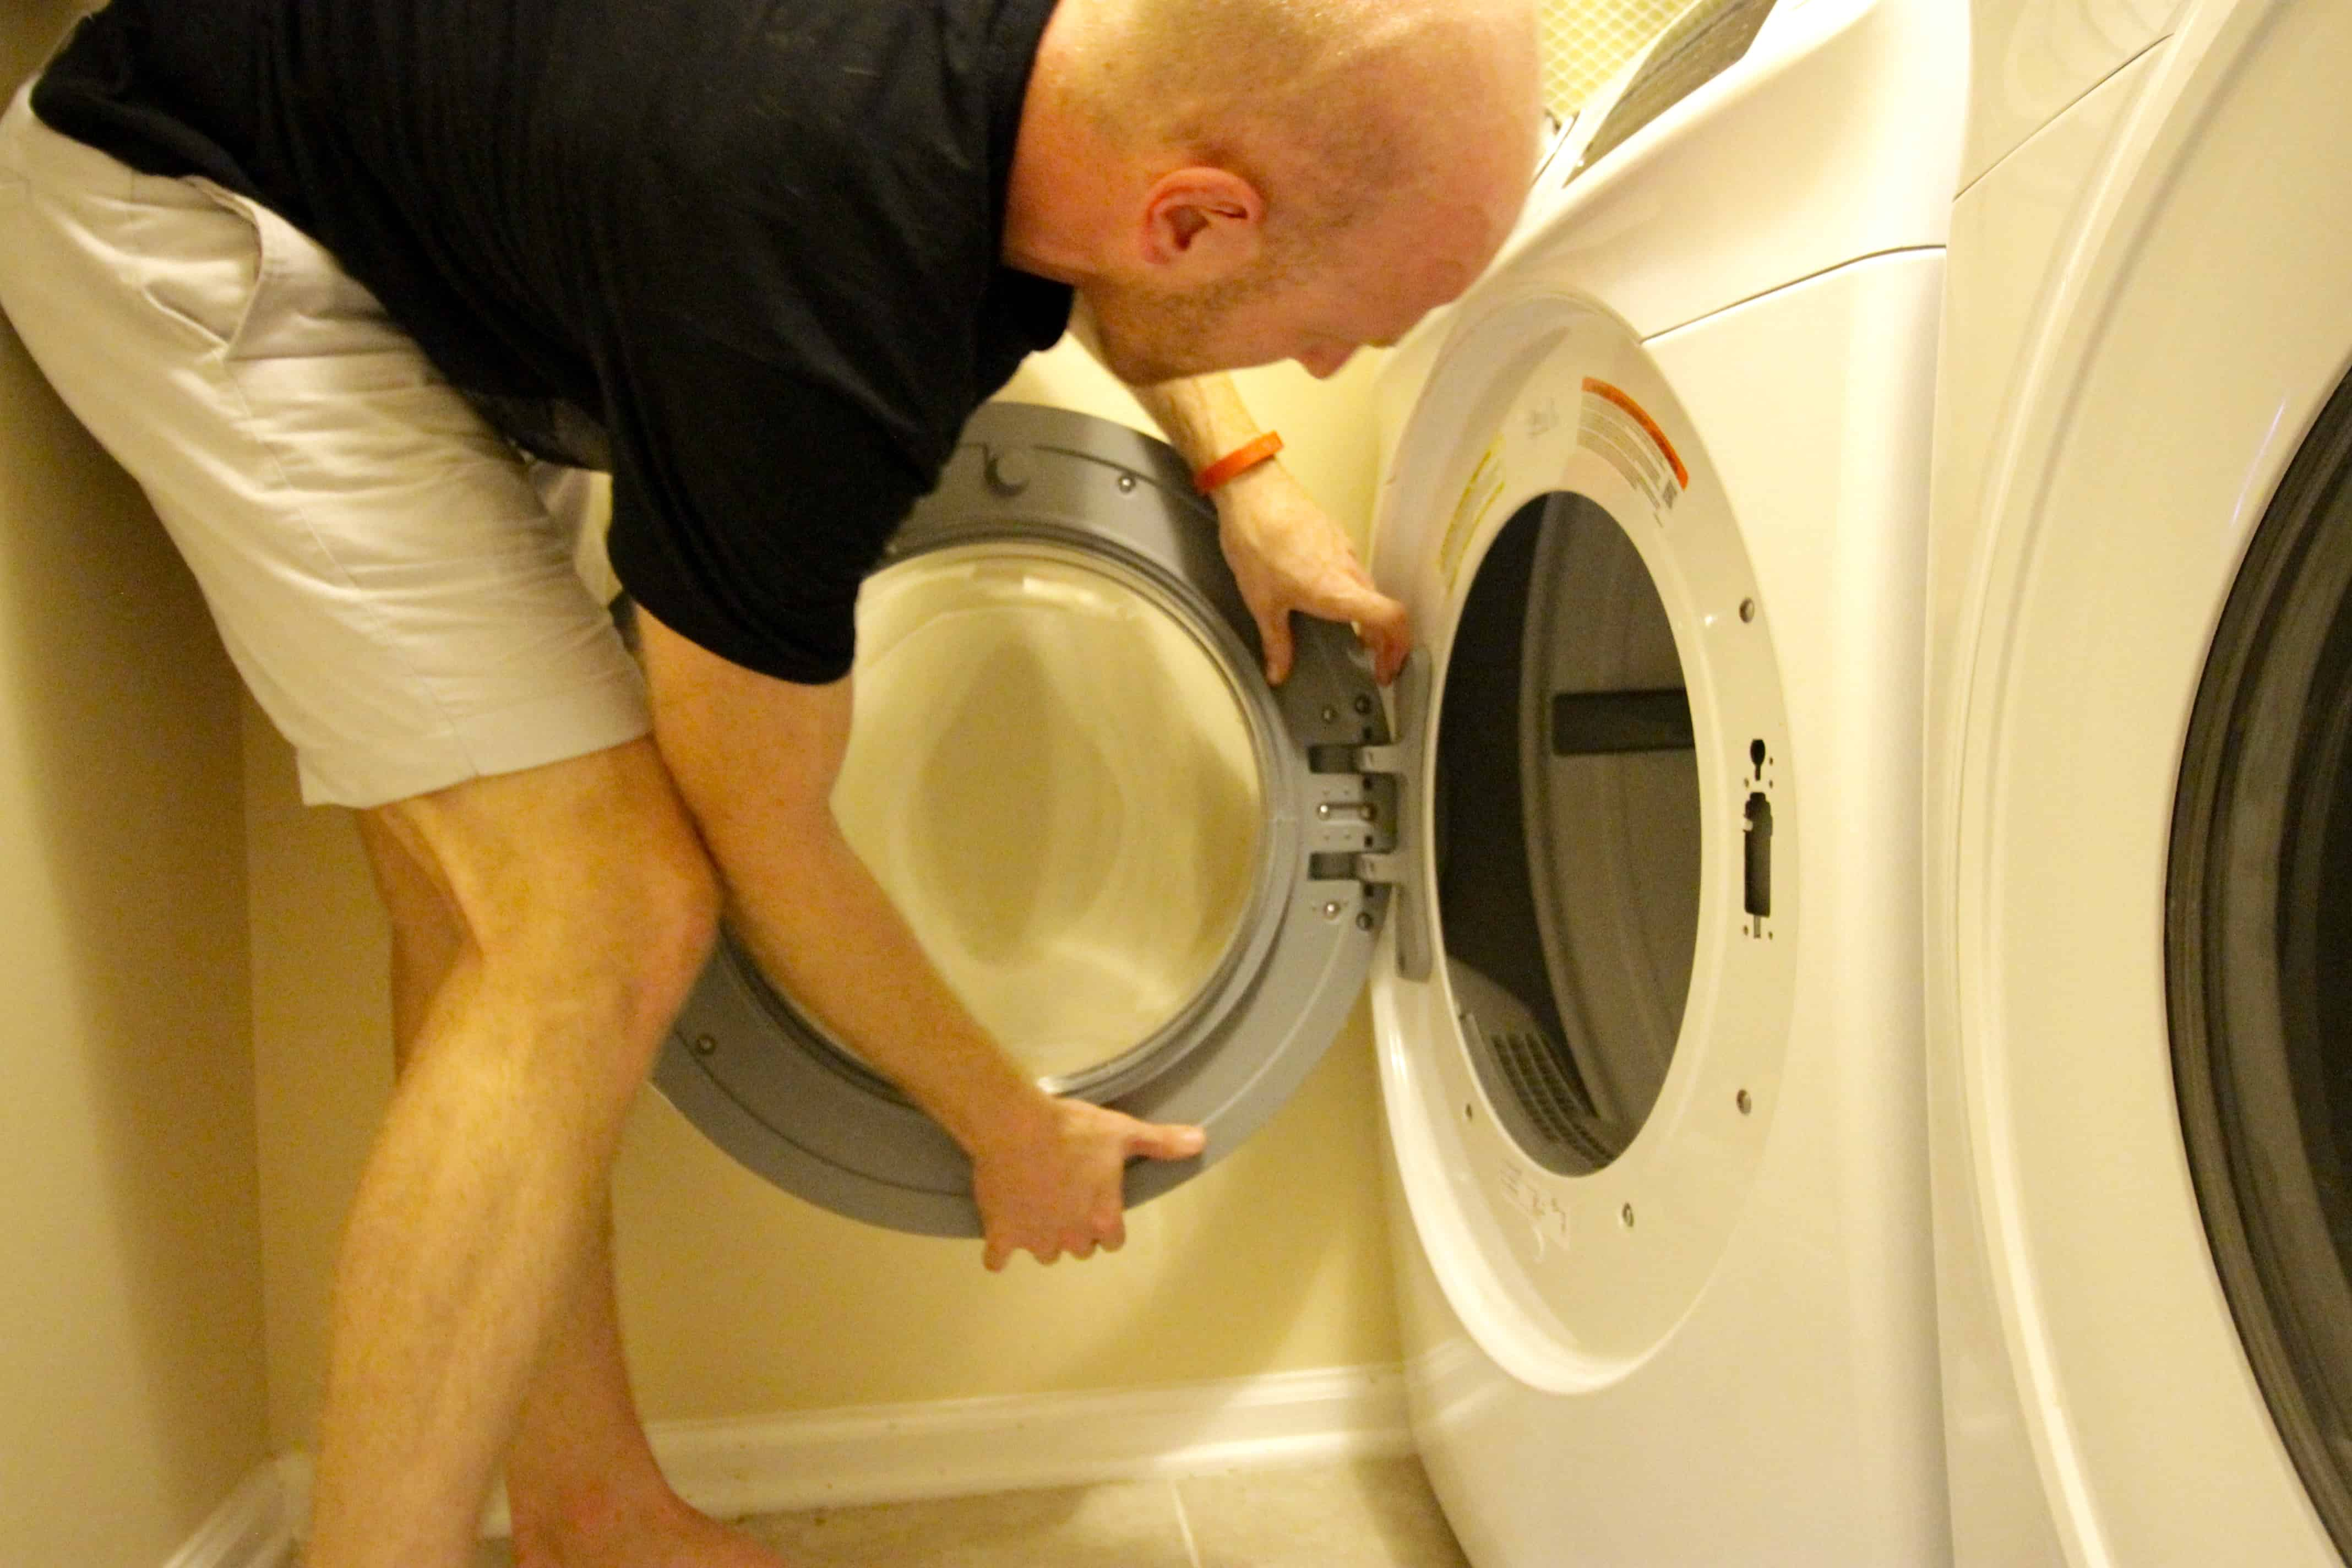 How to reverse a dryer door - charleston crafted